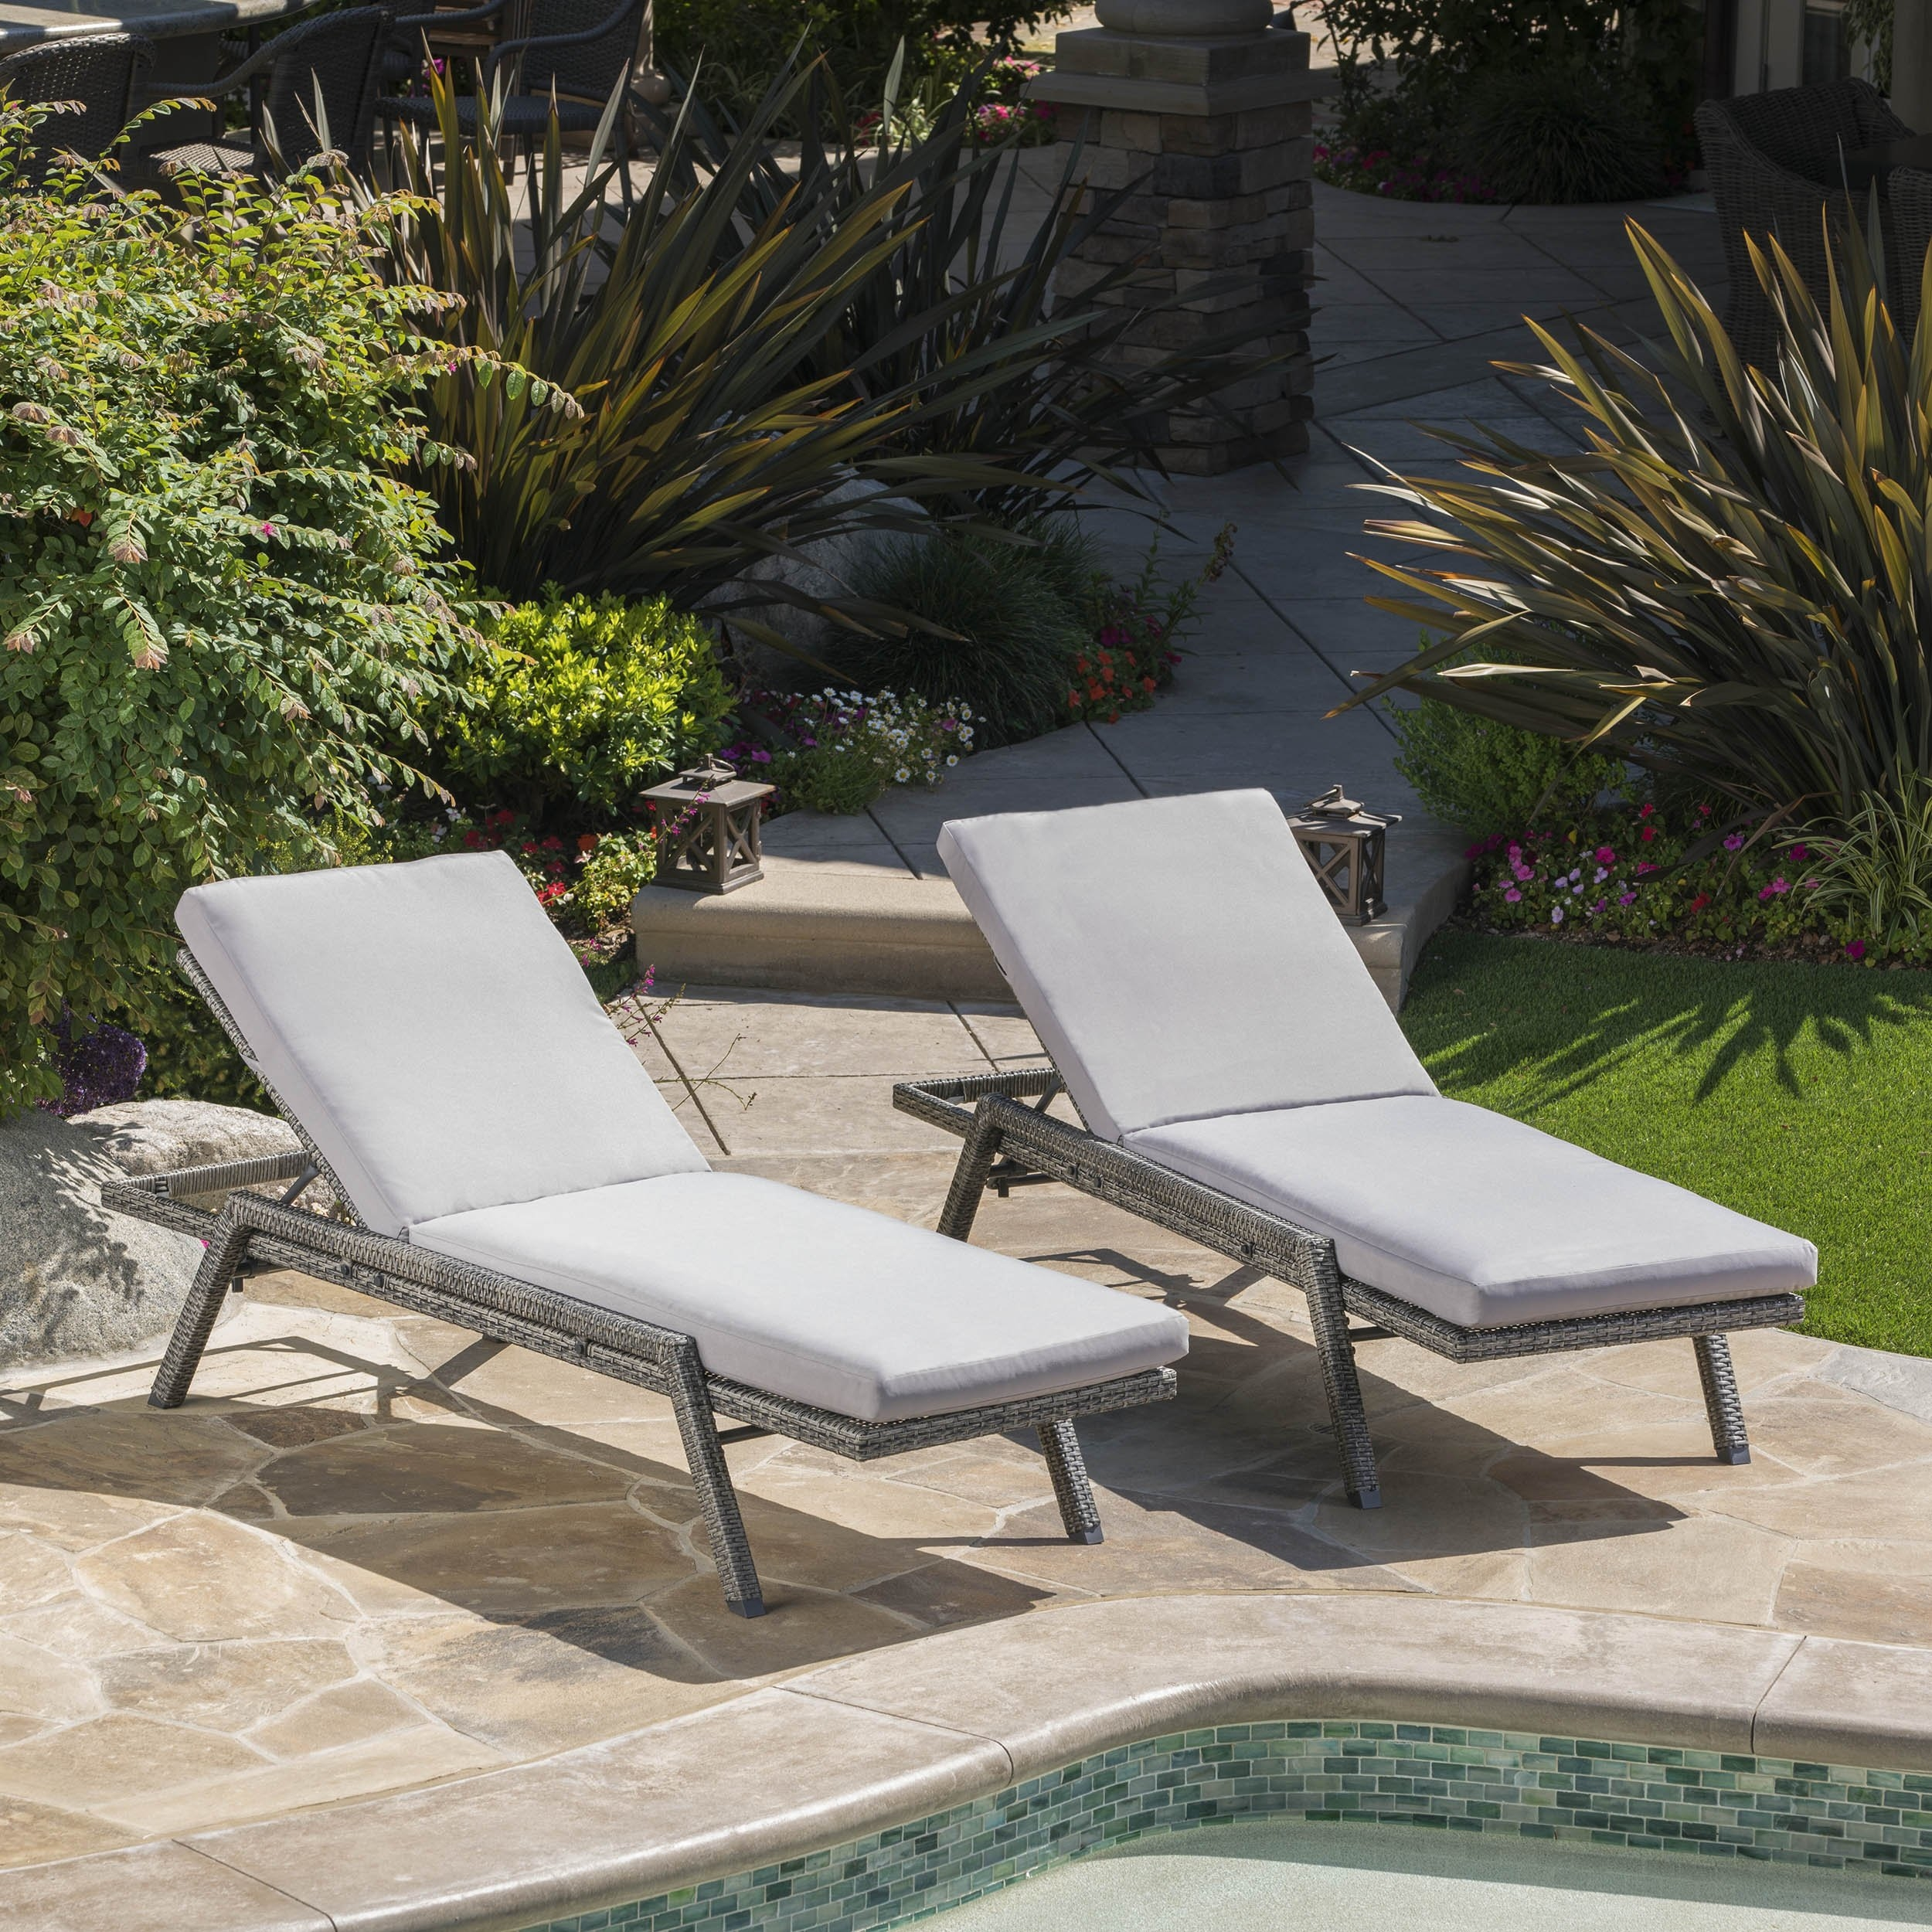 Fiora Outdoor Wicker Chaise Lounge w/ Grey Water Resistant Cushion (Set of 2) (1)